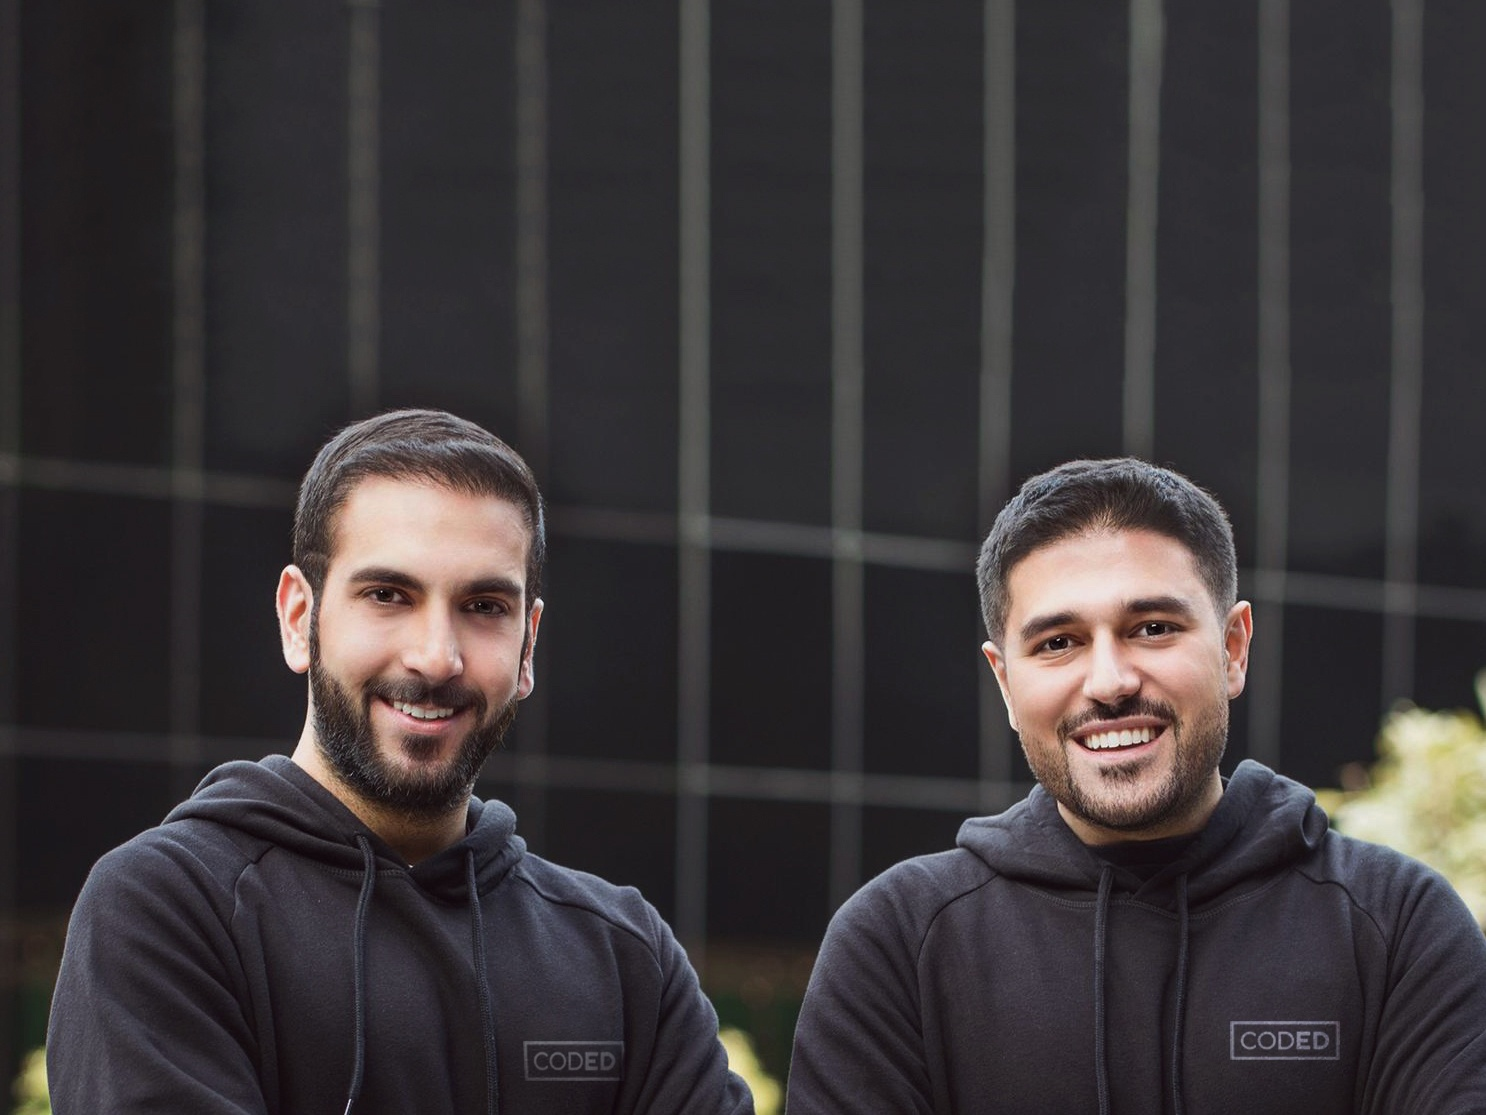 Coding education company CODED raises $1.3 million Pre-series A funding to teach the Arab world coding